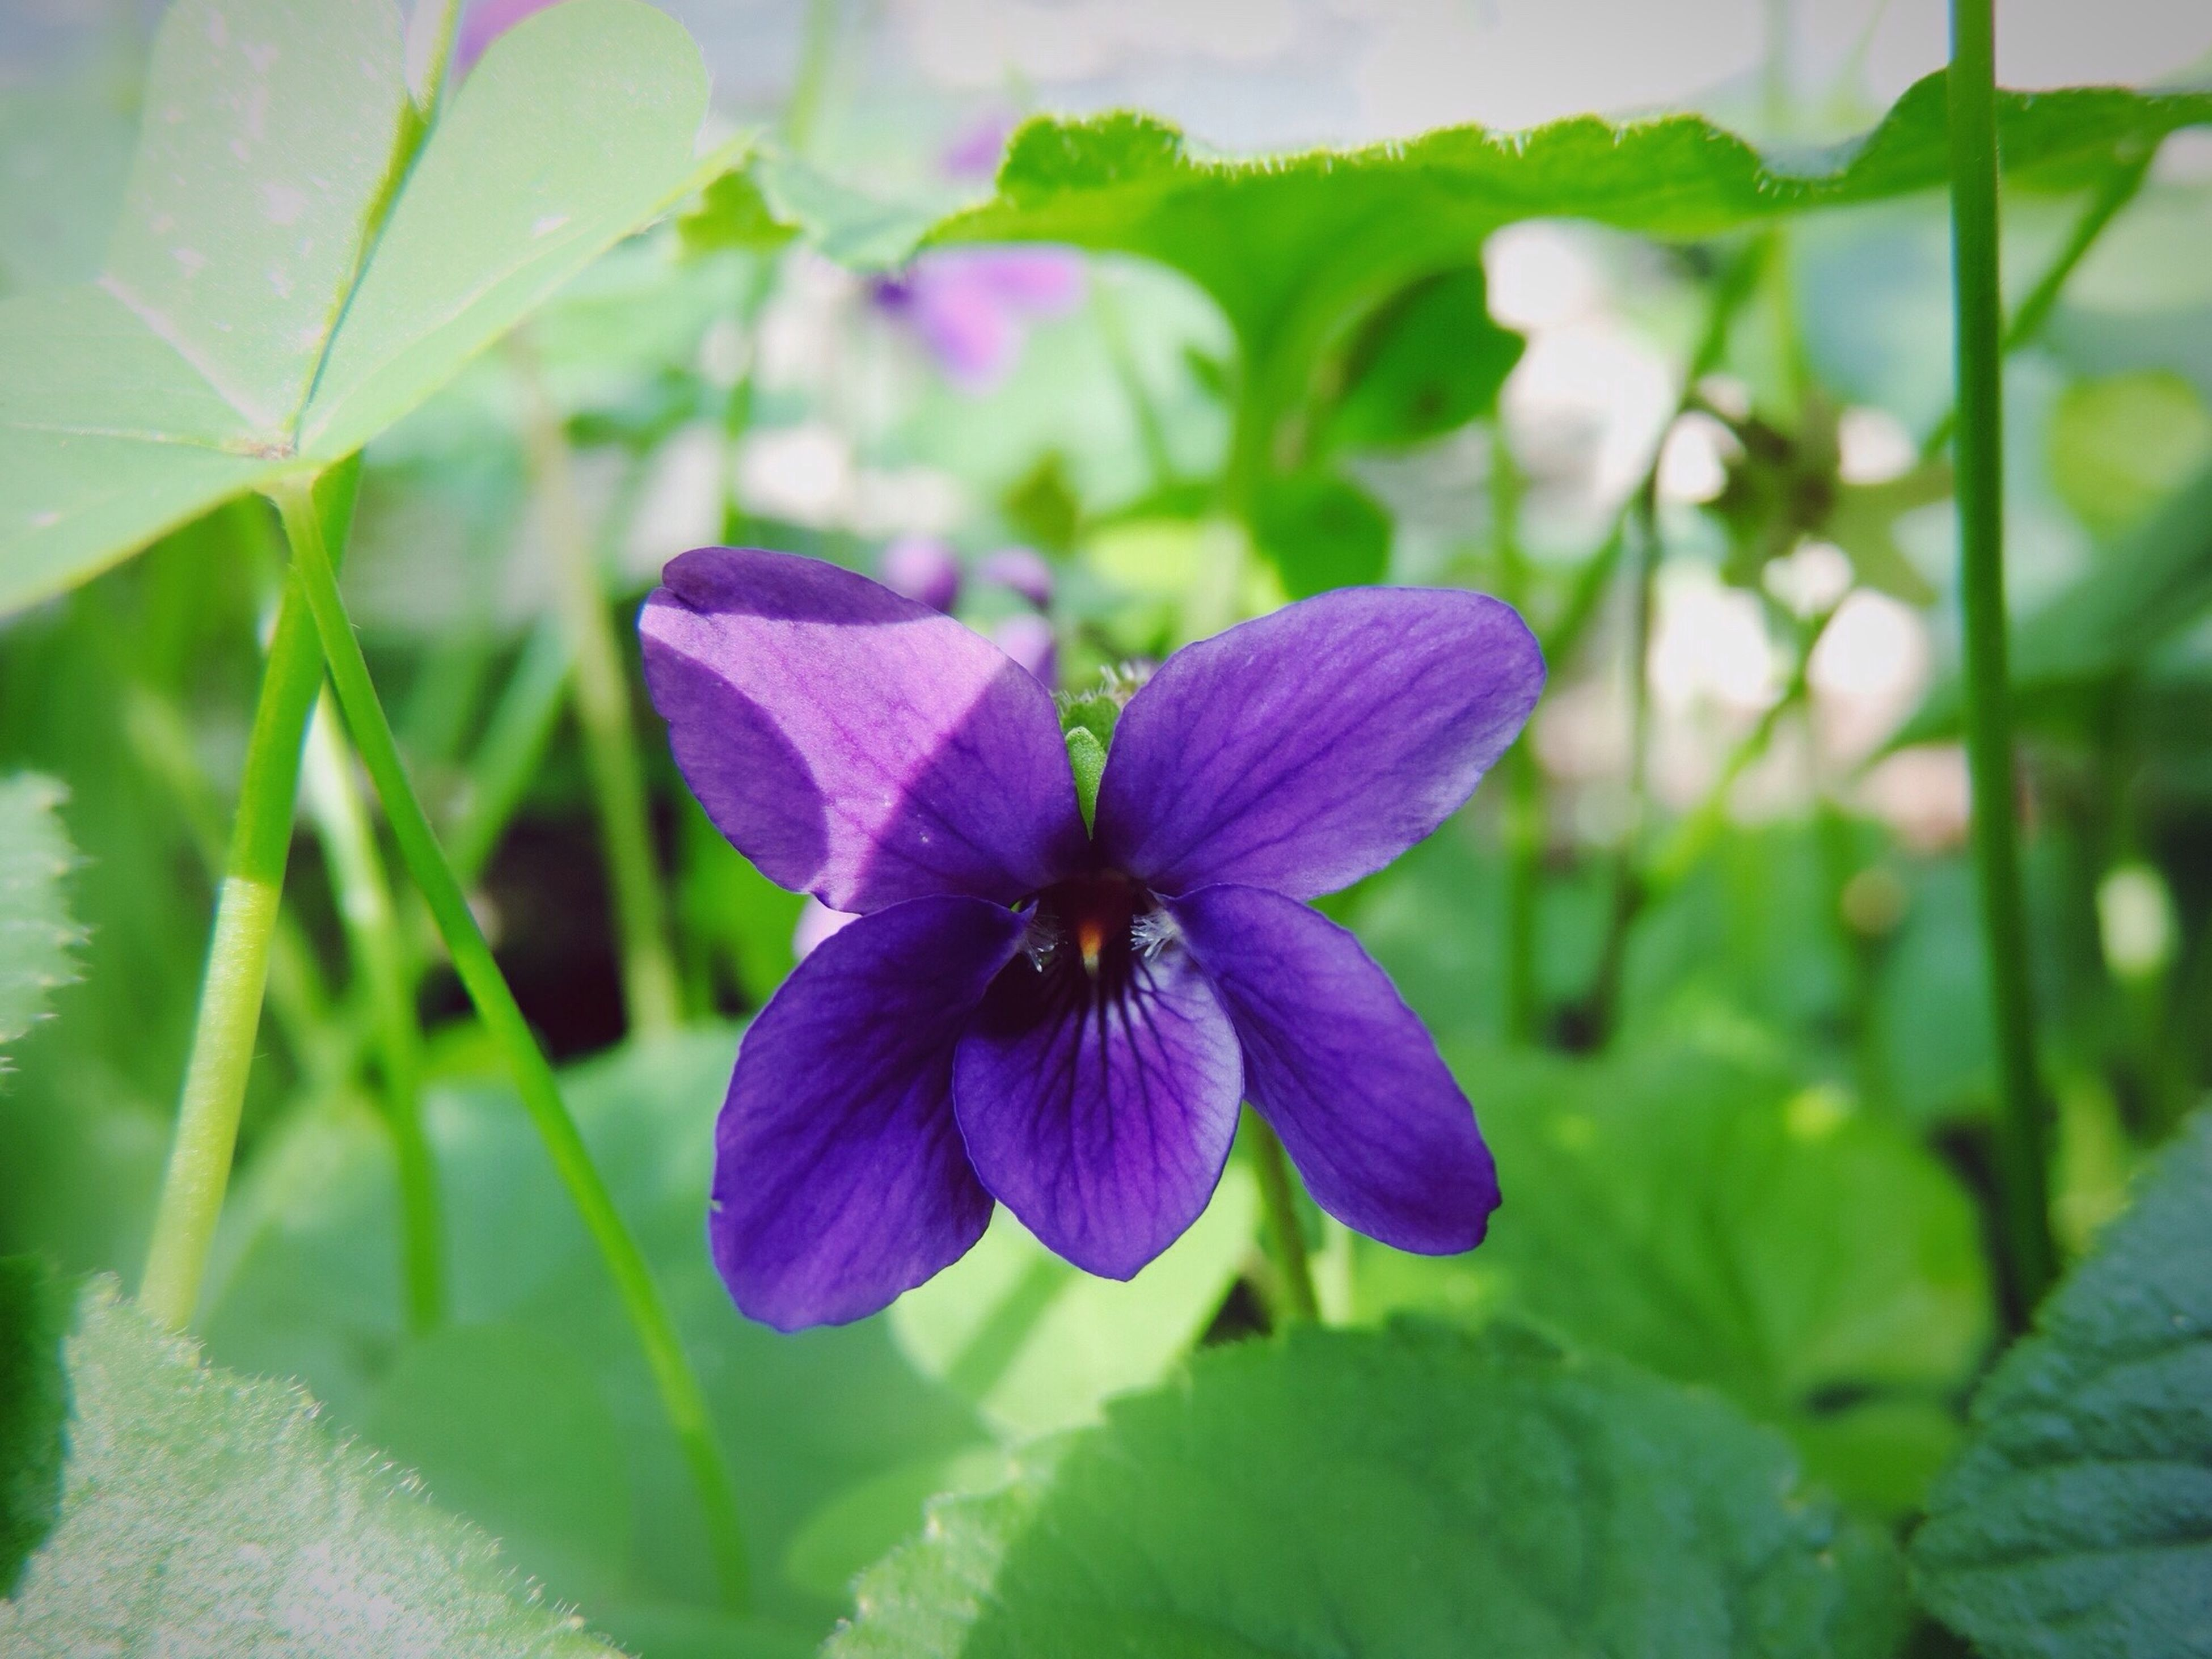 flower, purple, freshness, fragility, petal, flower head, growth, close-up, beauty in nature, in bloom, focus on foreground, springtime, nature, plant, selective focus, single flower, botany, blooming, blossom, park - man made space, clematis, vibrant color, day, outdoors, purple color, green color, no people, softness, tropical flower